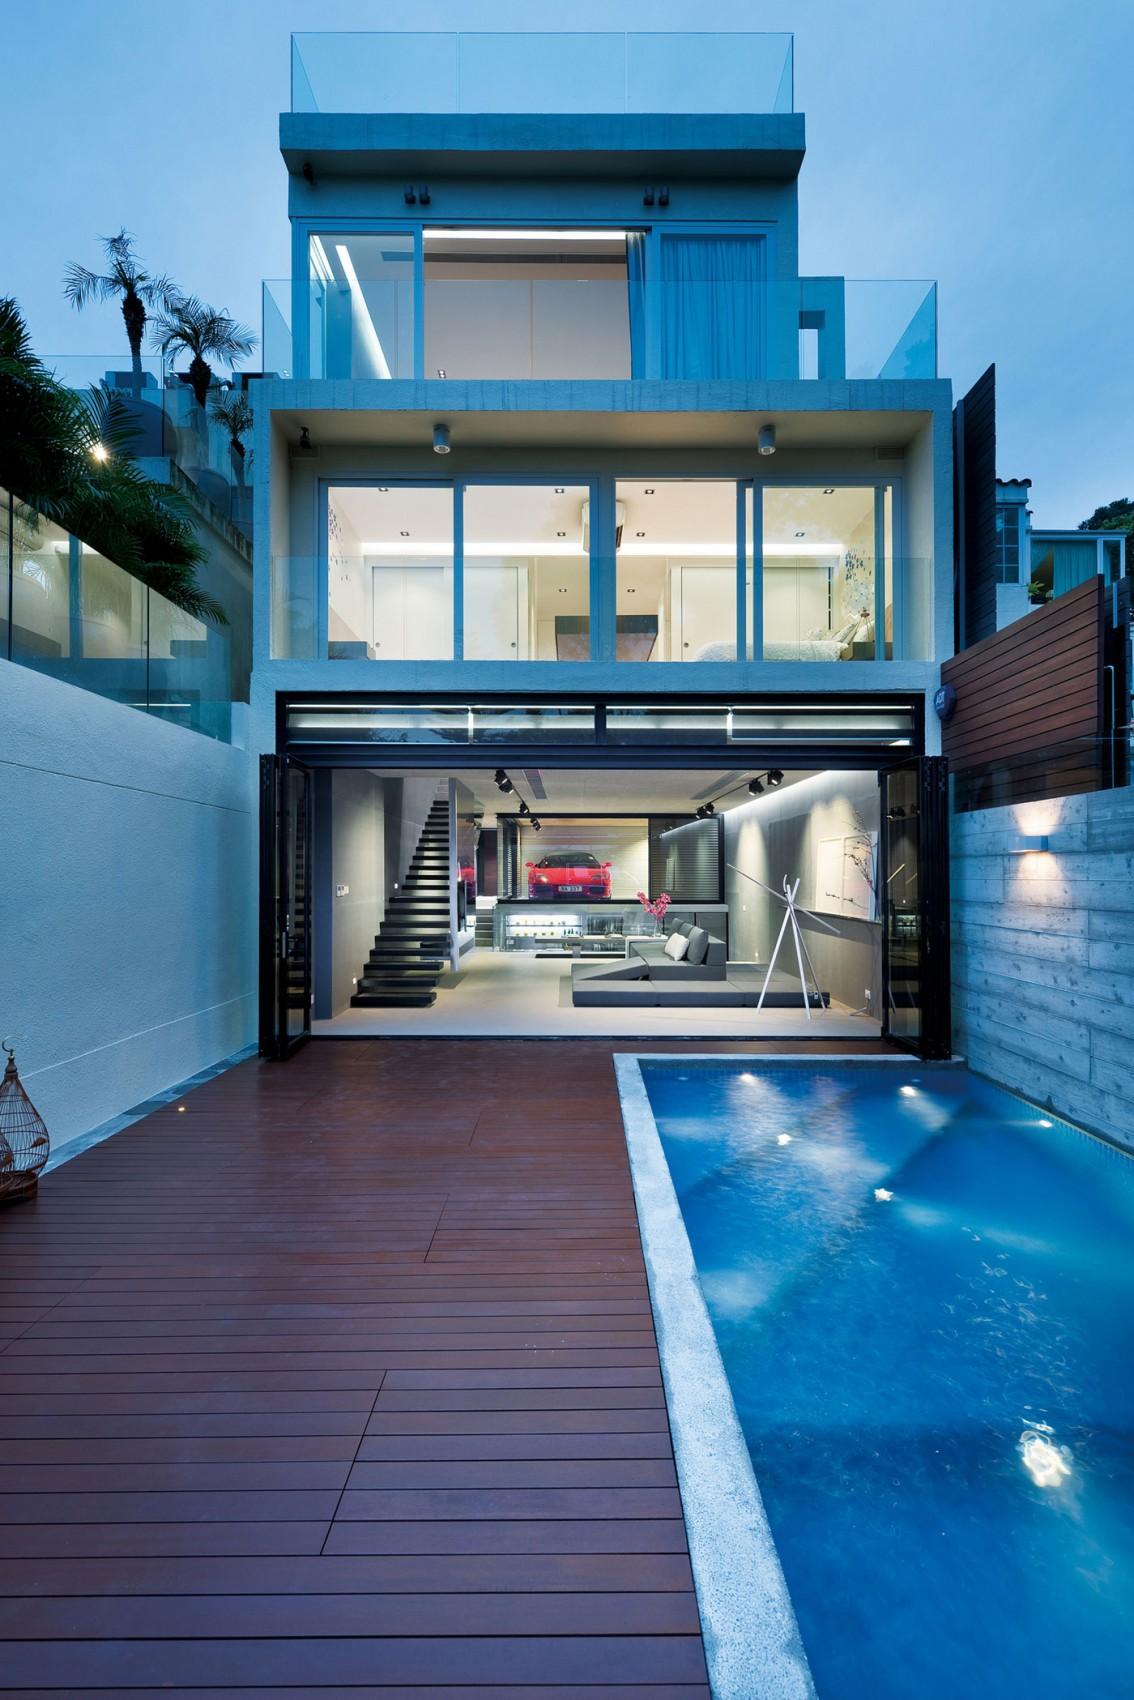 Backyard Pool - Modern remodel in hong kong with a ferrari as focus